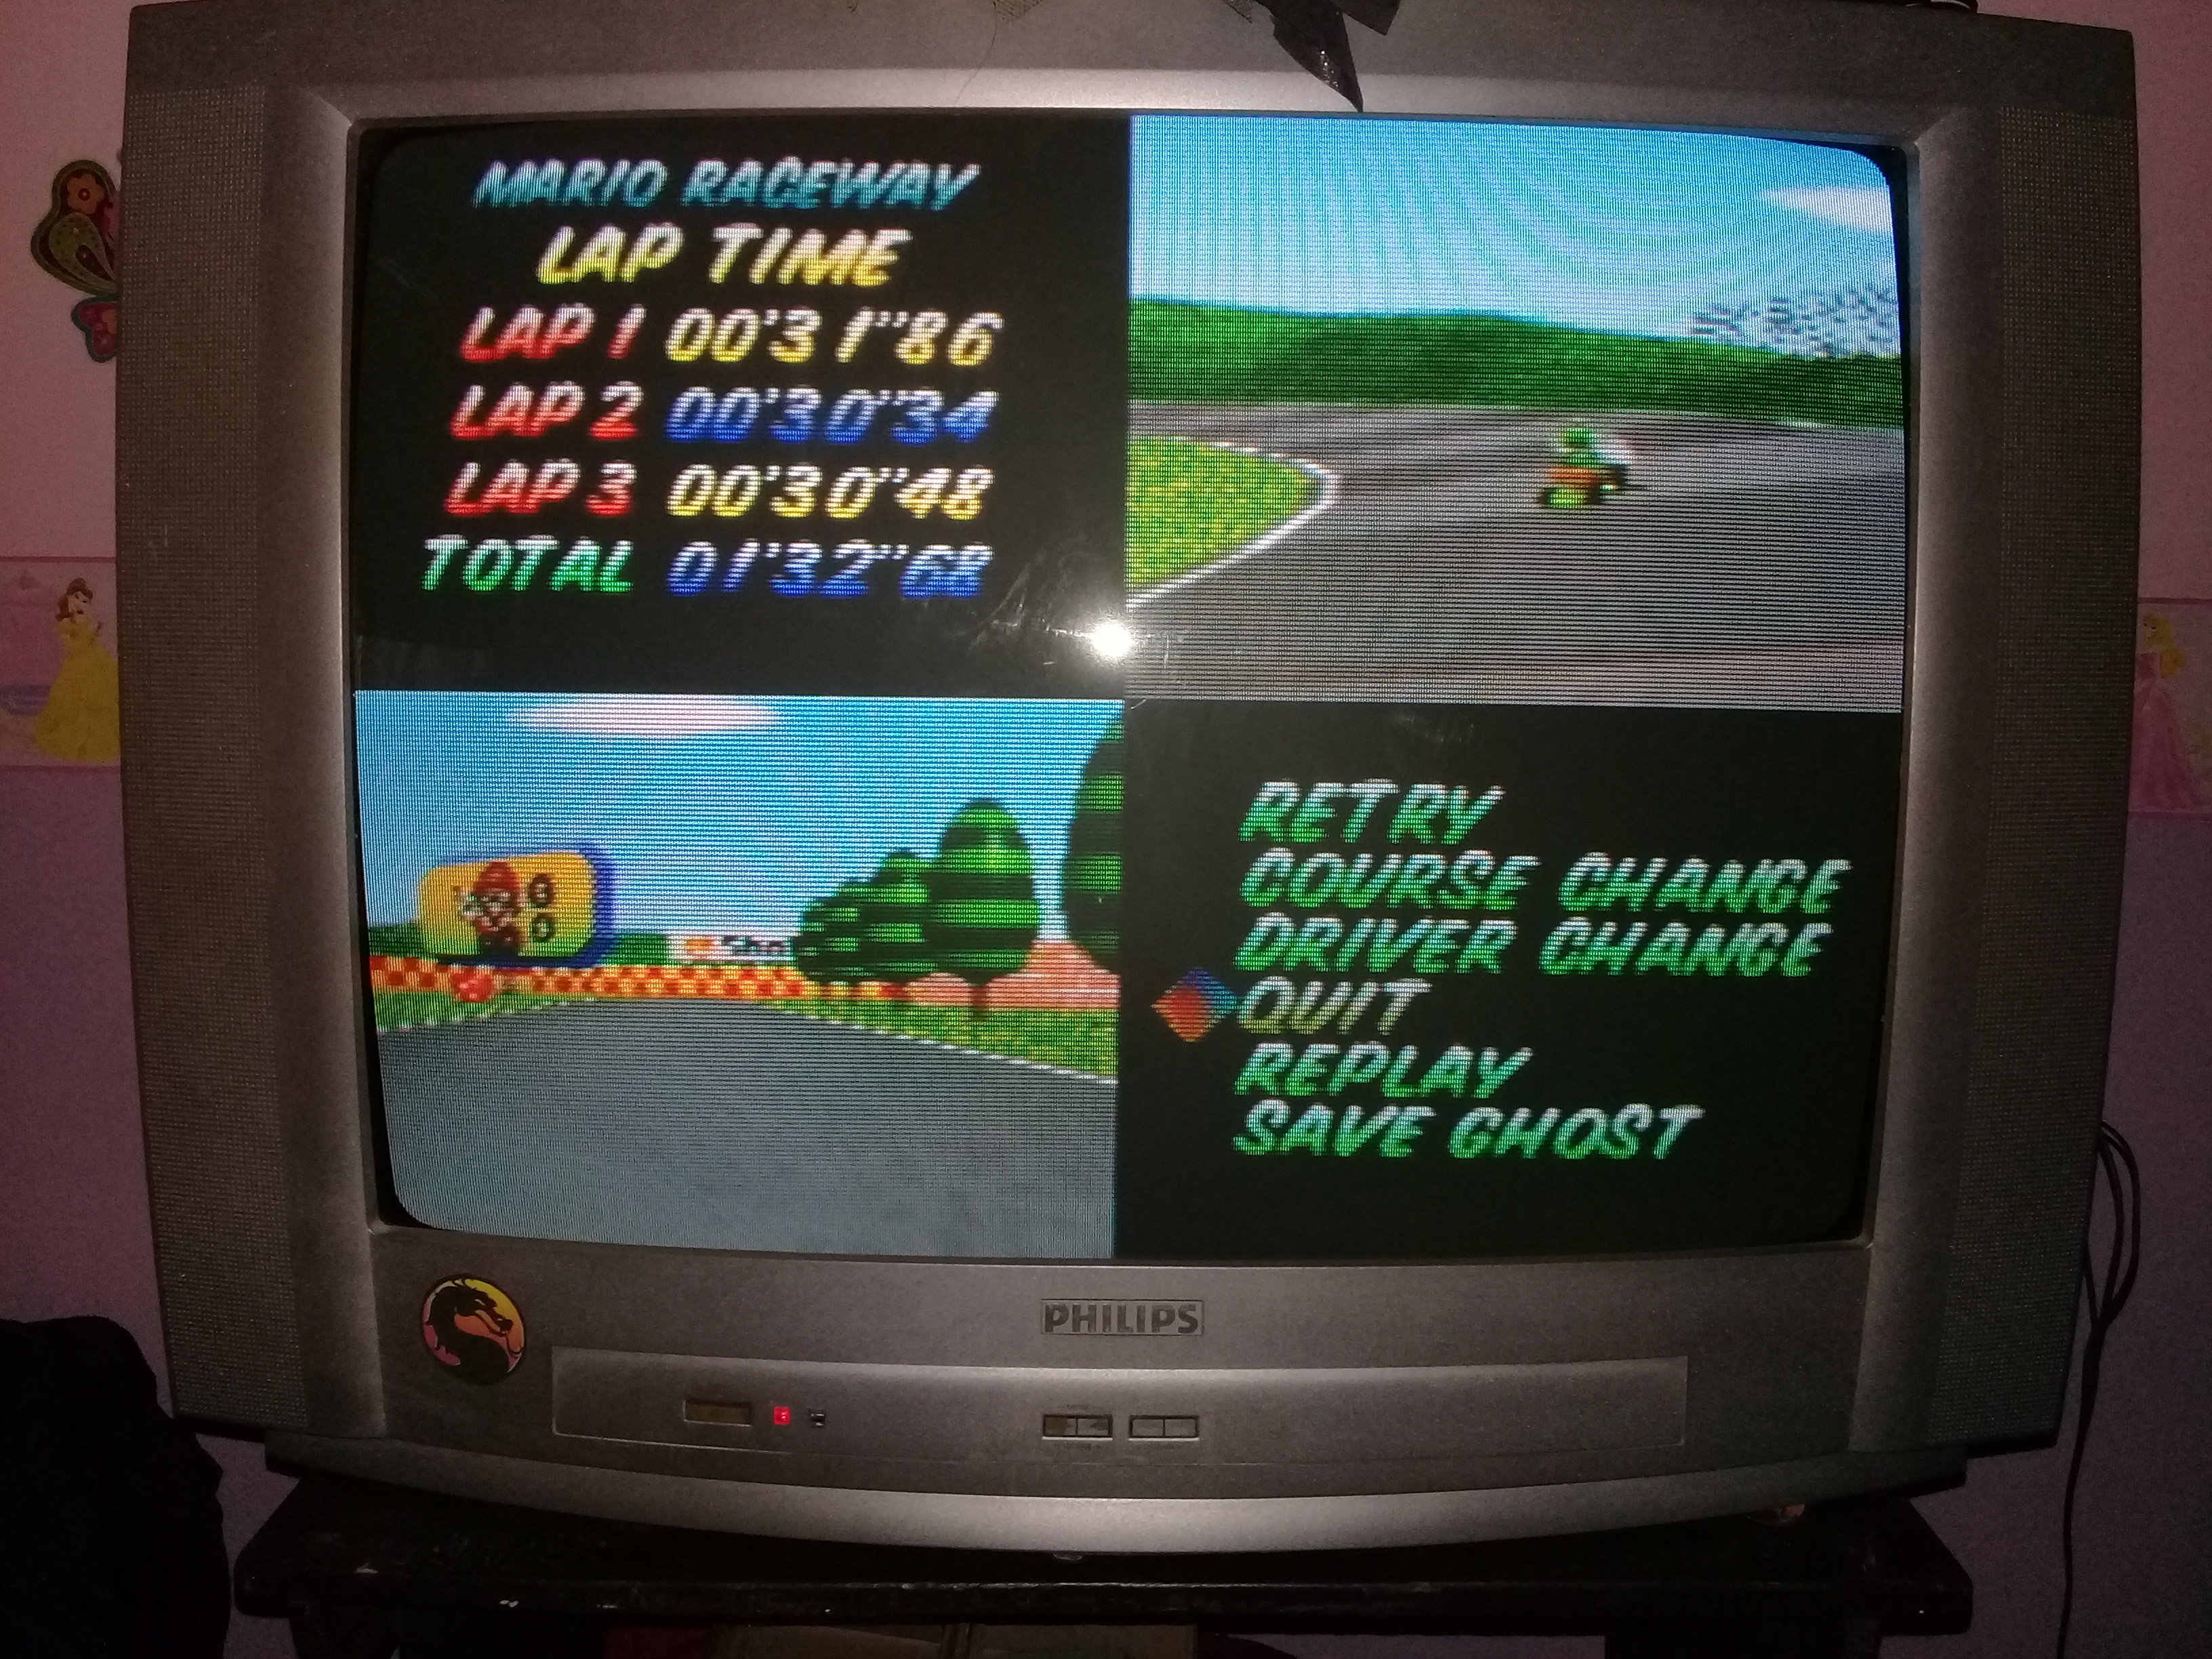 omargeddon: Mario Kart 64: Mario Raceway [Time Trial] (N64) 0:01:32.68 points on 2020-04-22 14:24:02